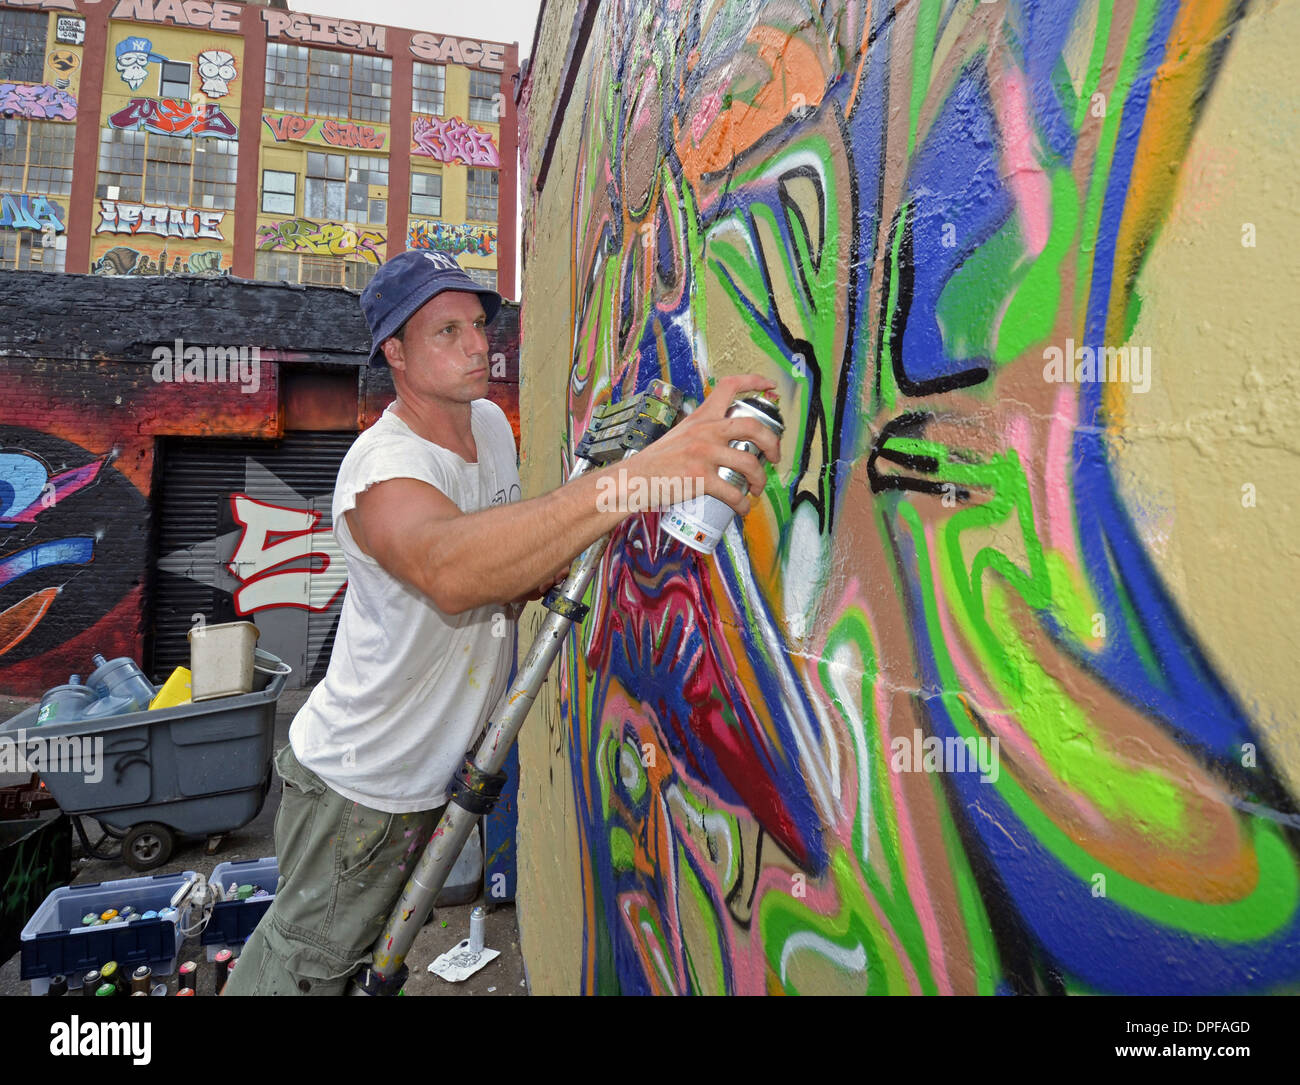 Portrait of graffiti artist working on a piece at 5 Pointz in Long Island City, Queens, New York - Stock Image